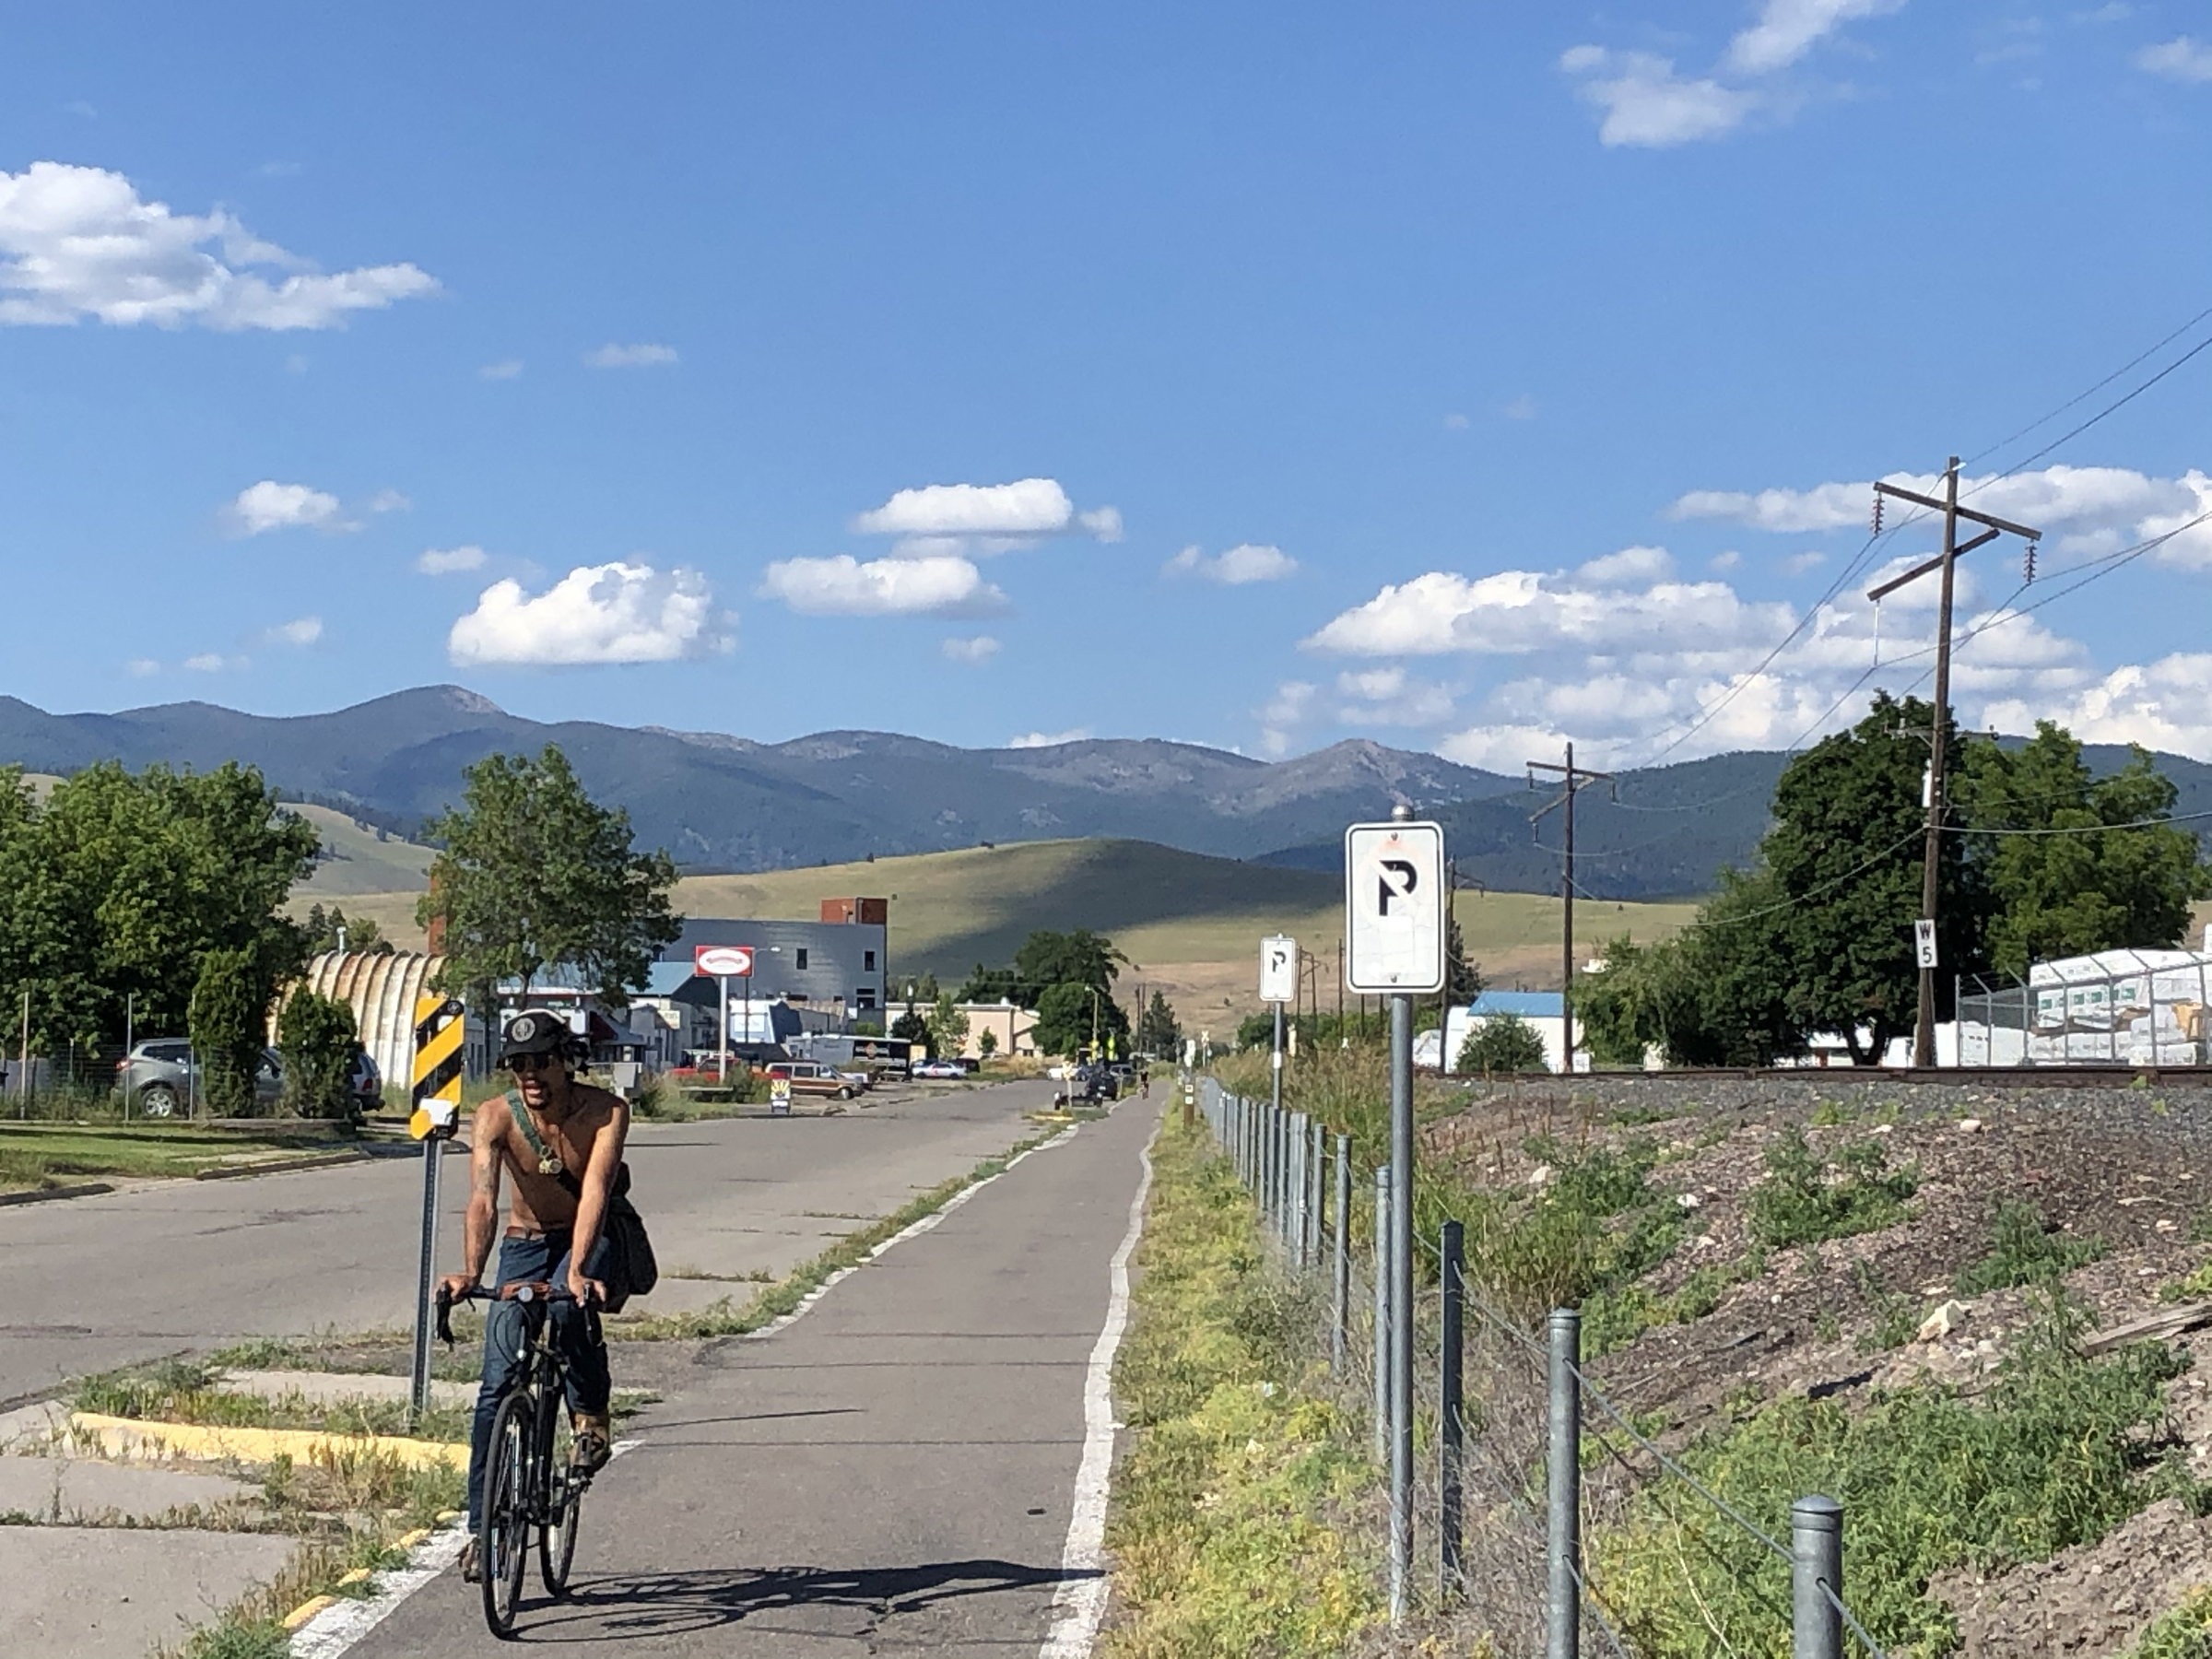 Riding a bike path through the city of Missoula with mountains in the background